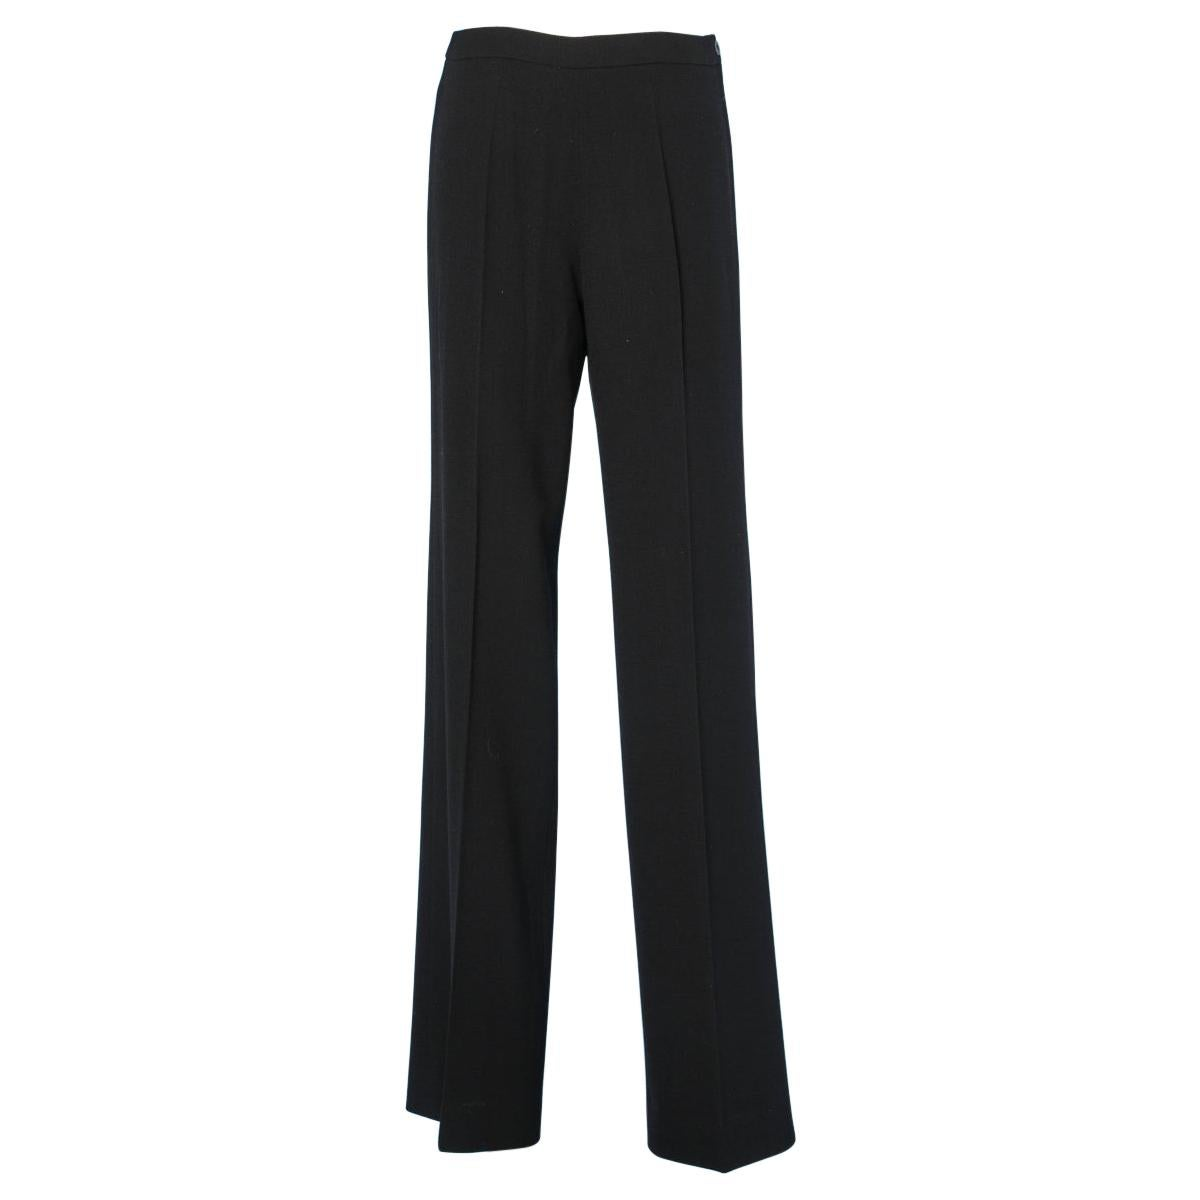 Vintage Chanel trousers in black crepe